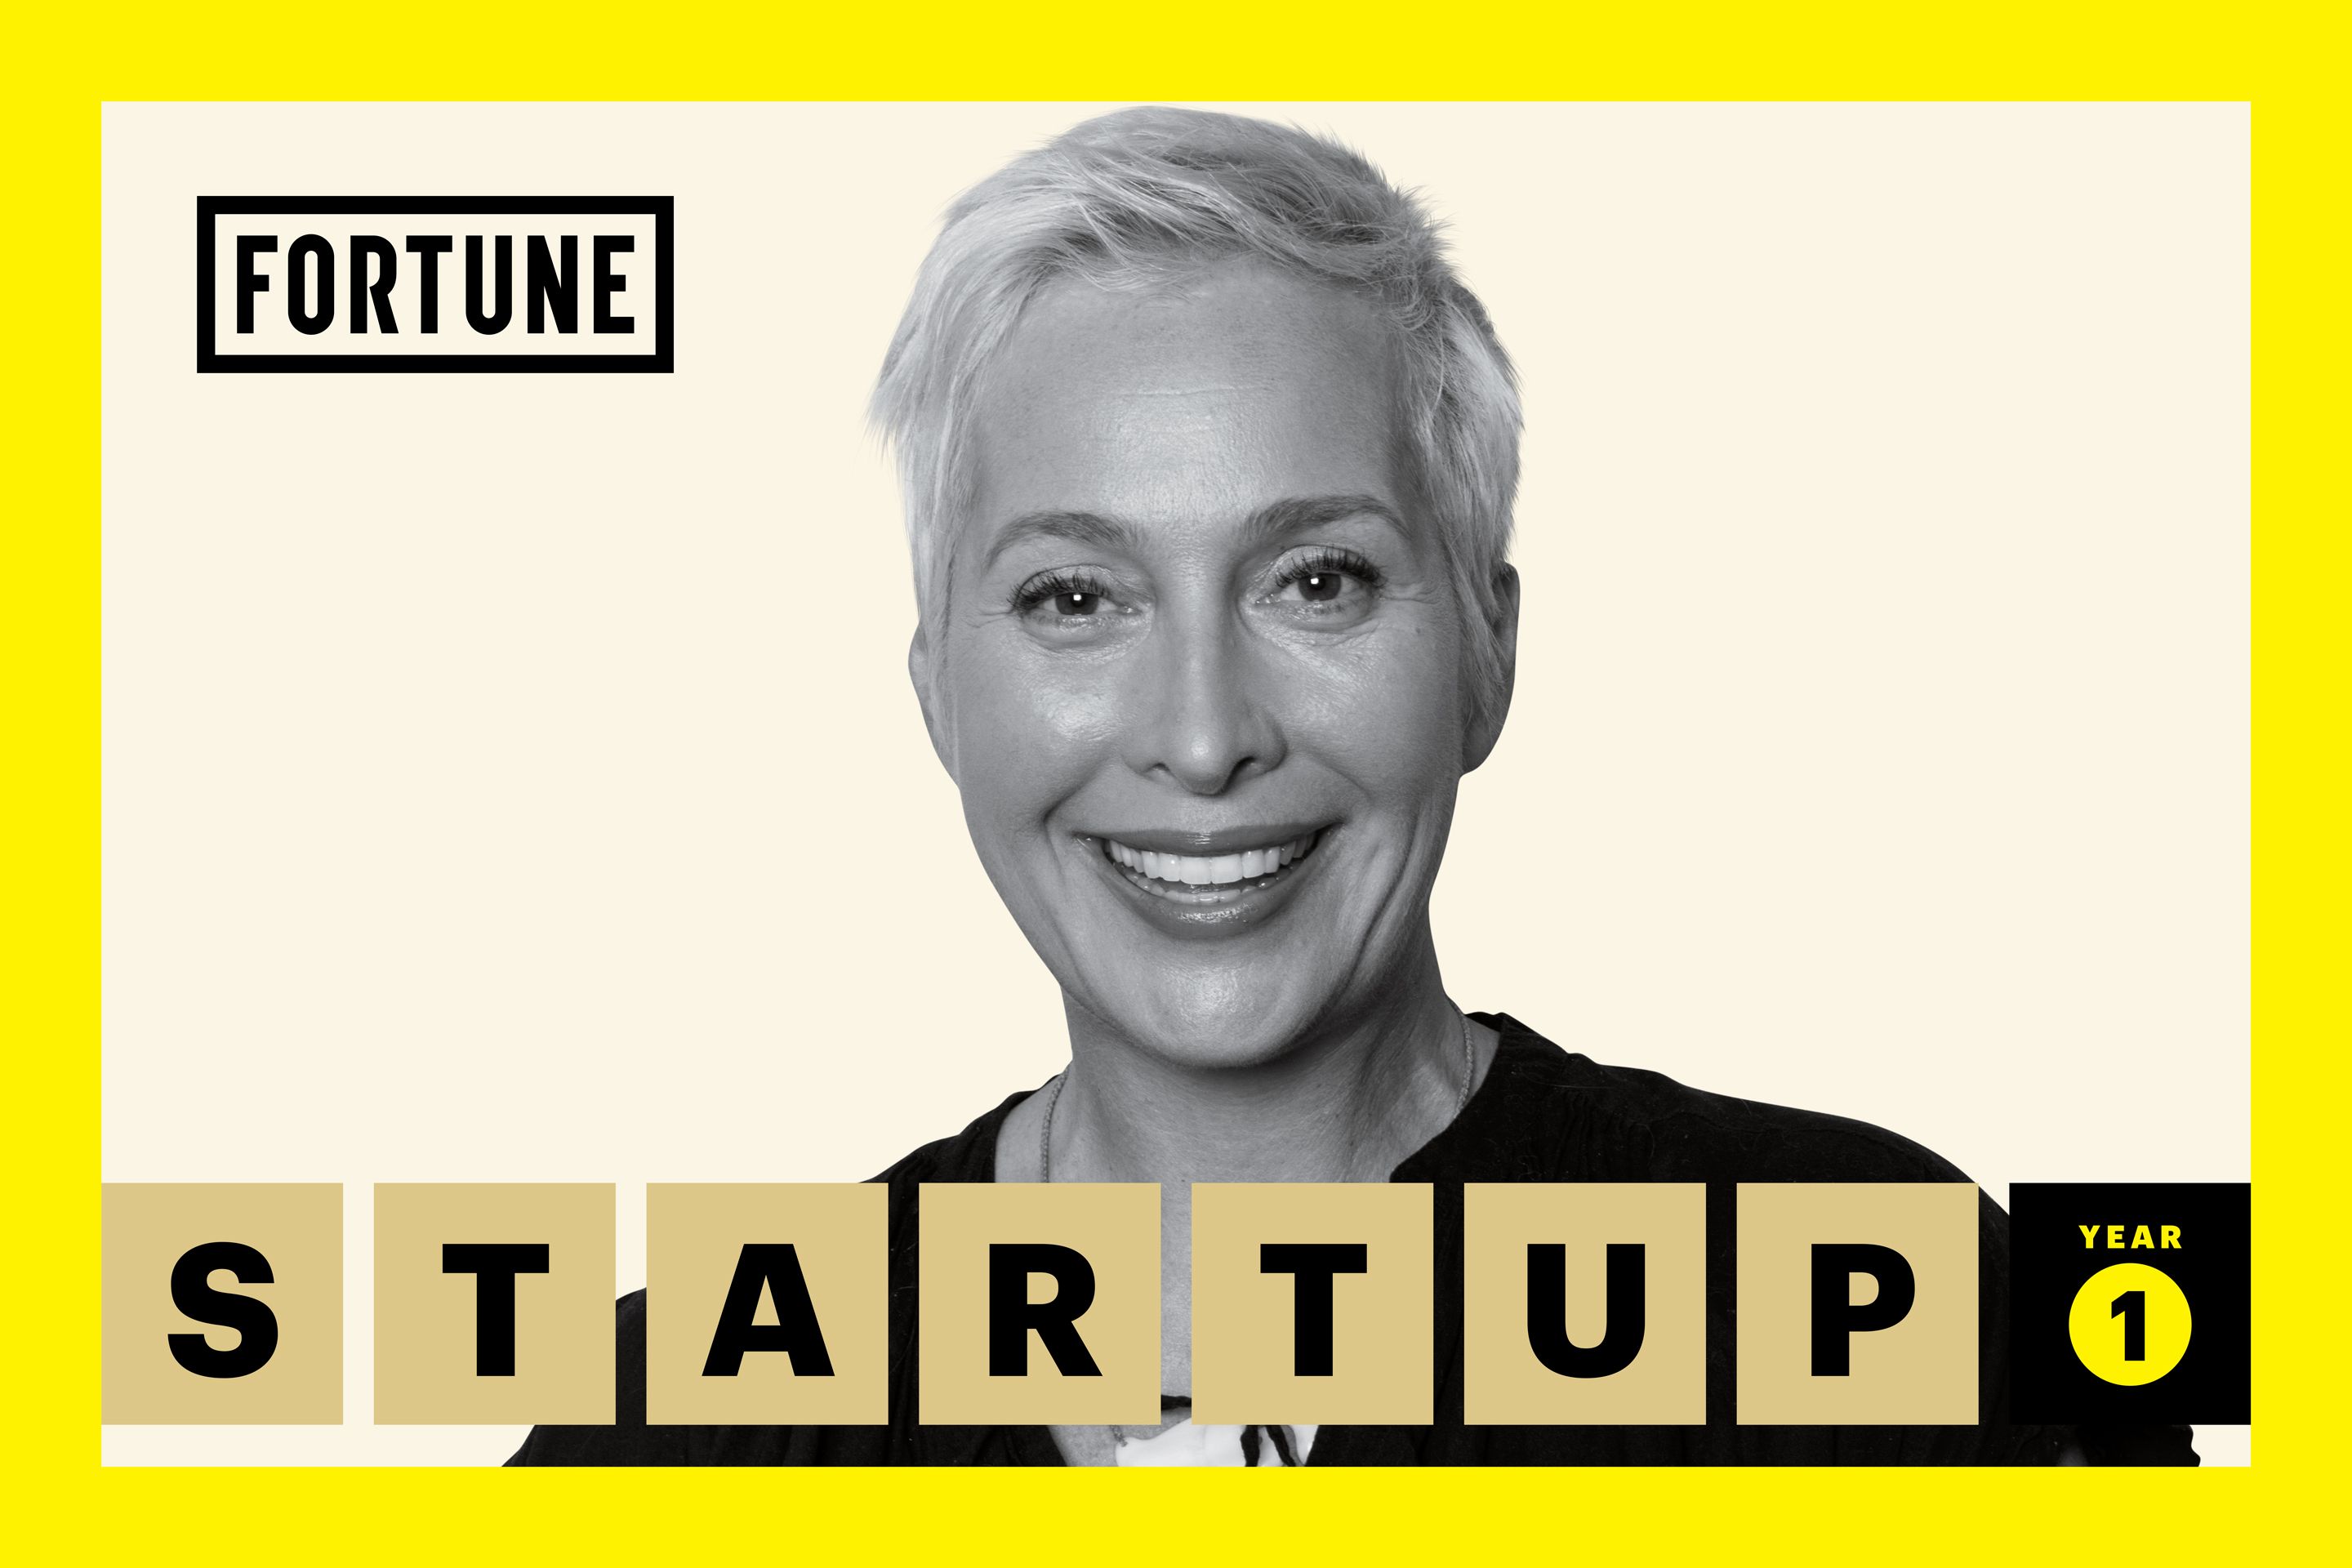 fortune.com - Rachel King - The founder of wellness startup Mab & Stoke on the growth of 'pay what you can' options during the pandemic